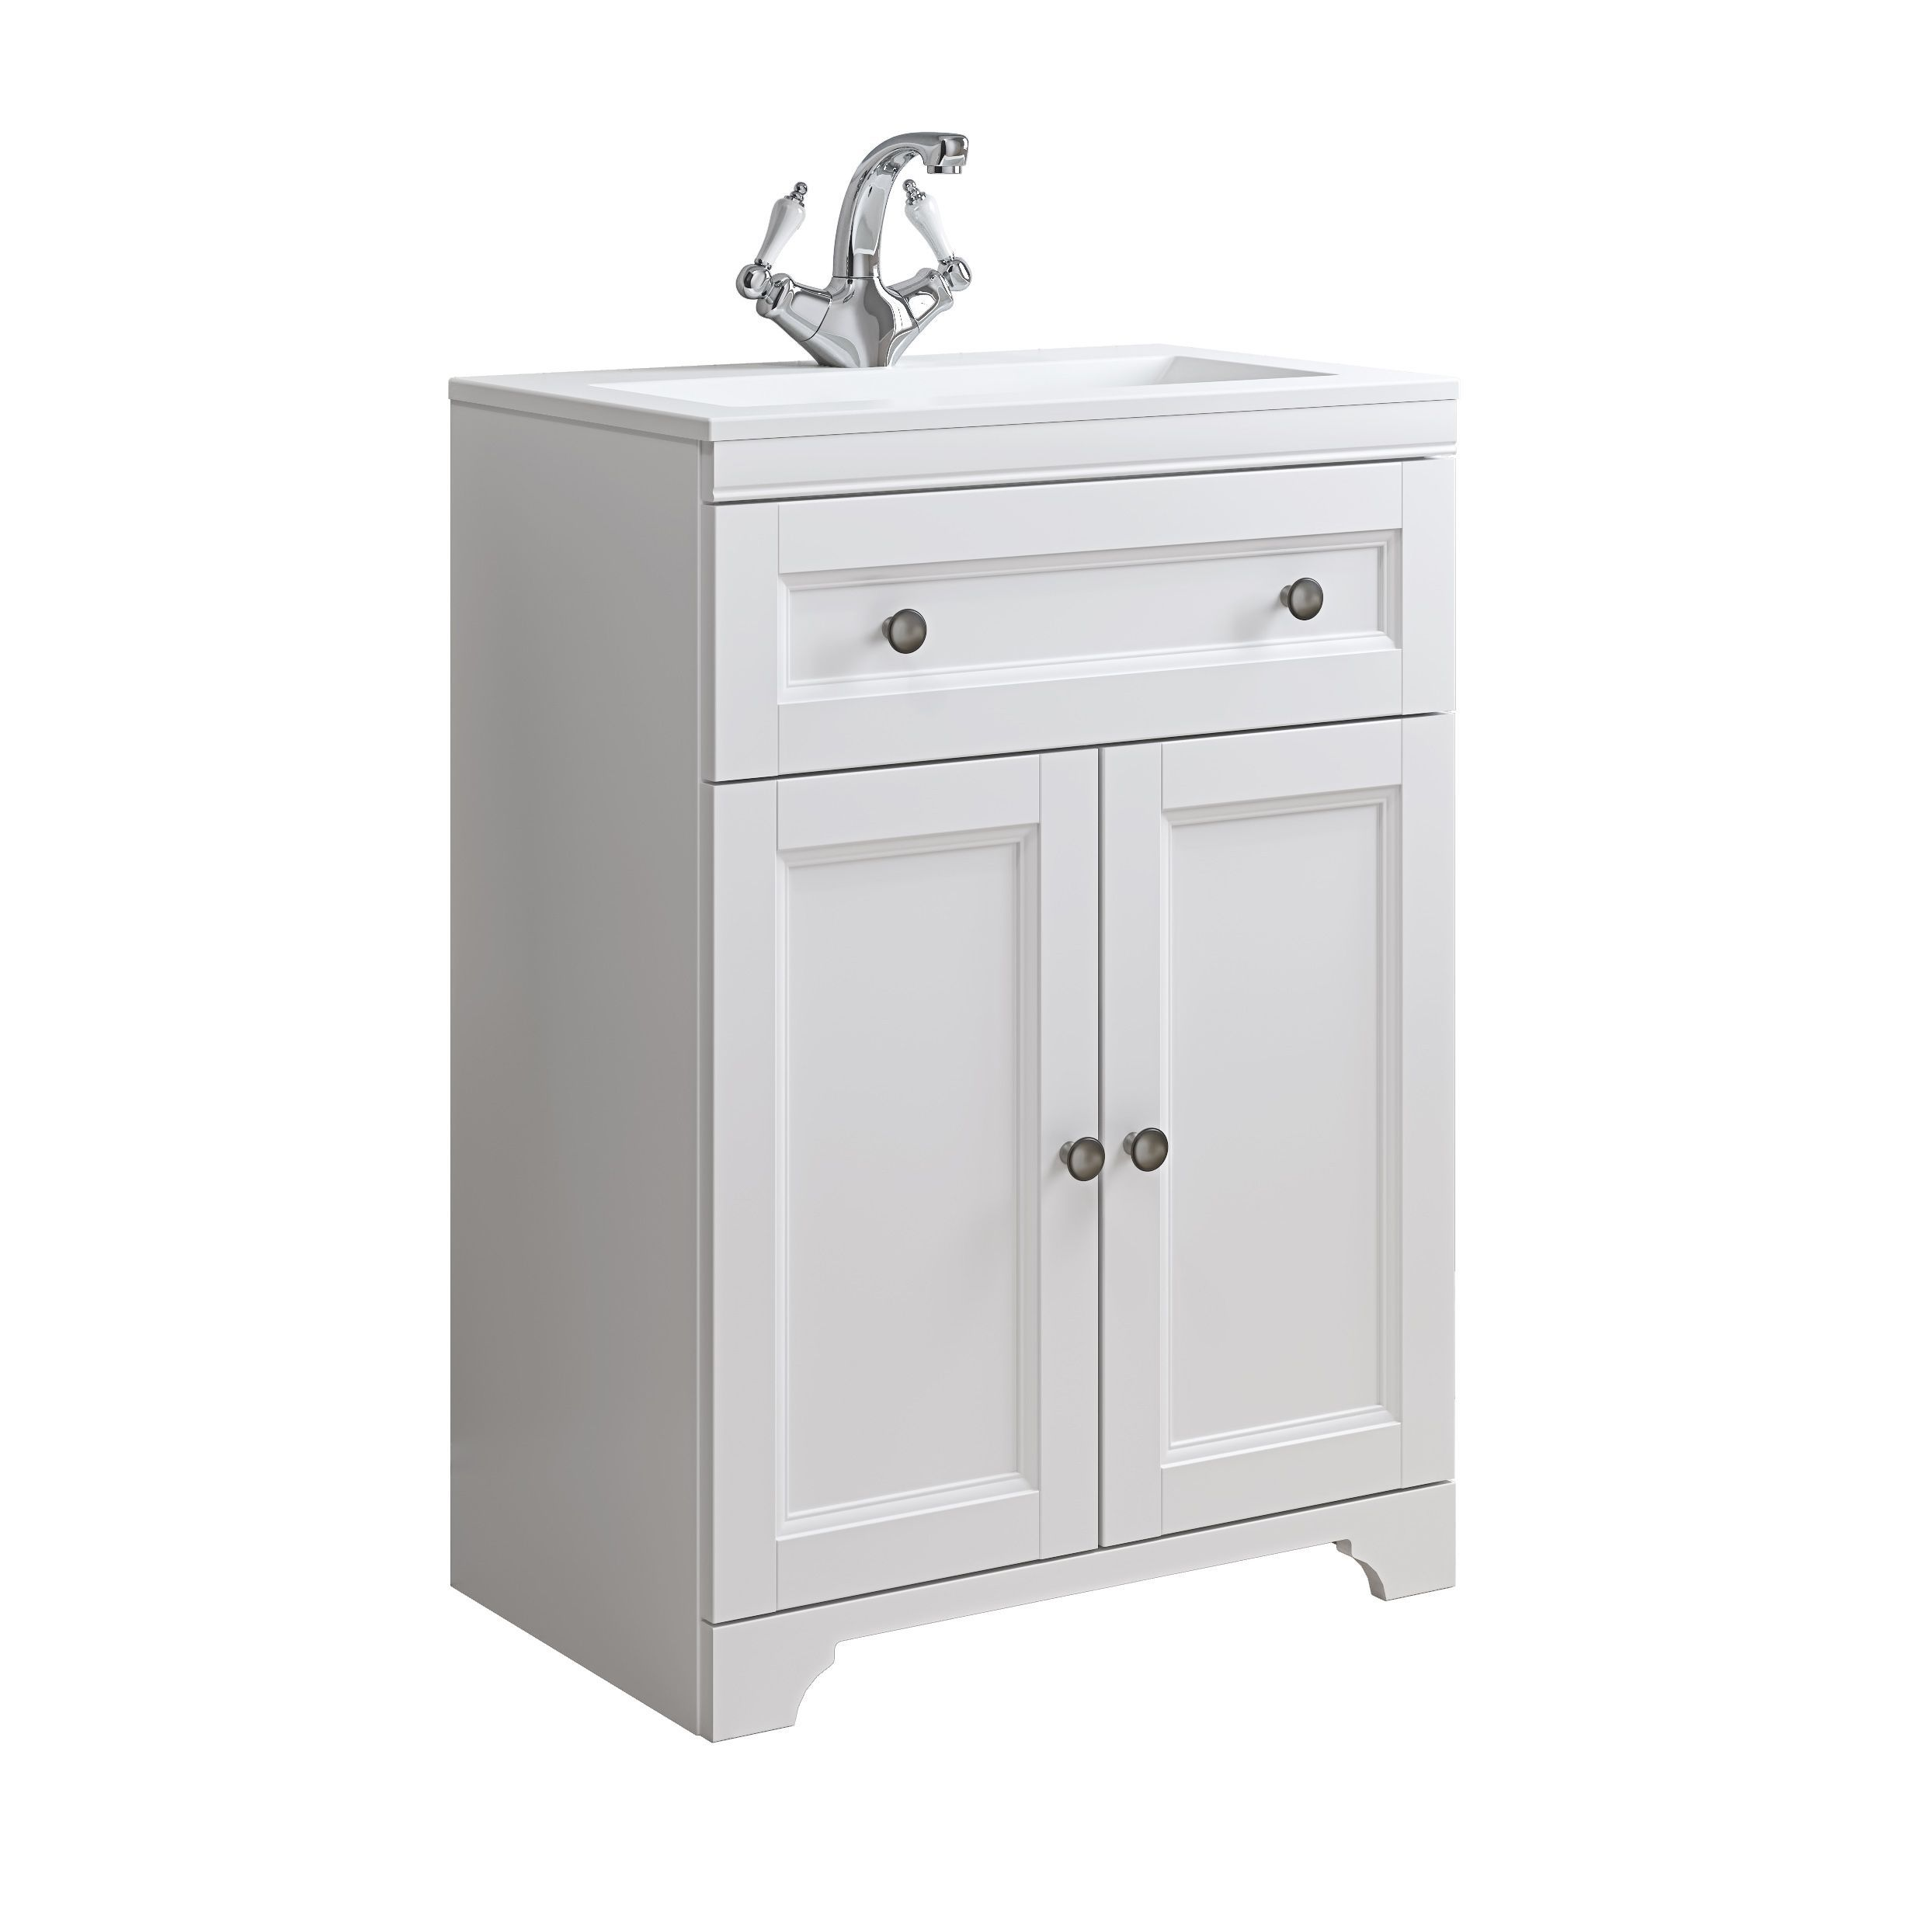 cooke lewis chadleigh matt white vanity unit basin set departments diy at b q. Black Bedroom Furniture Sets. Home Design Ideas